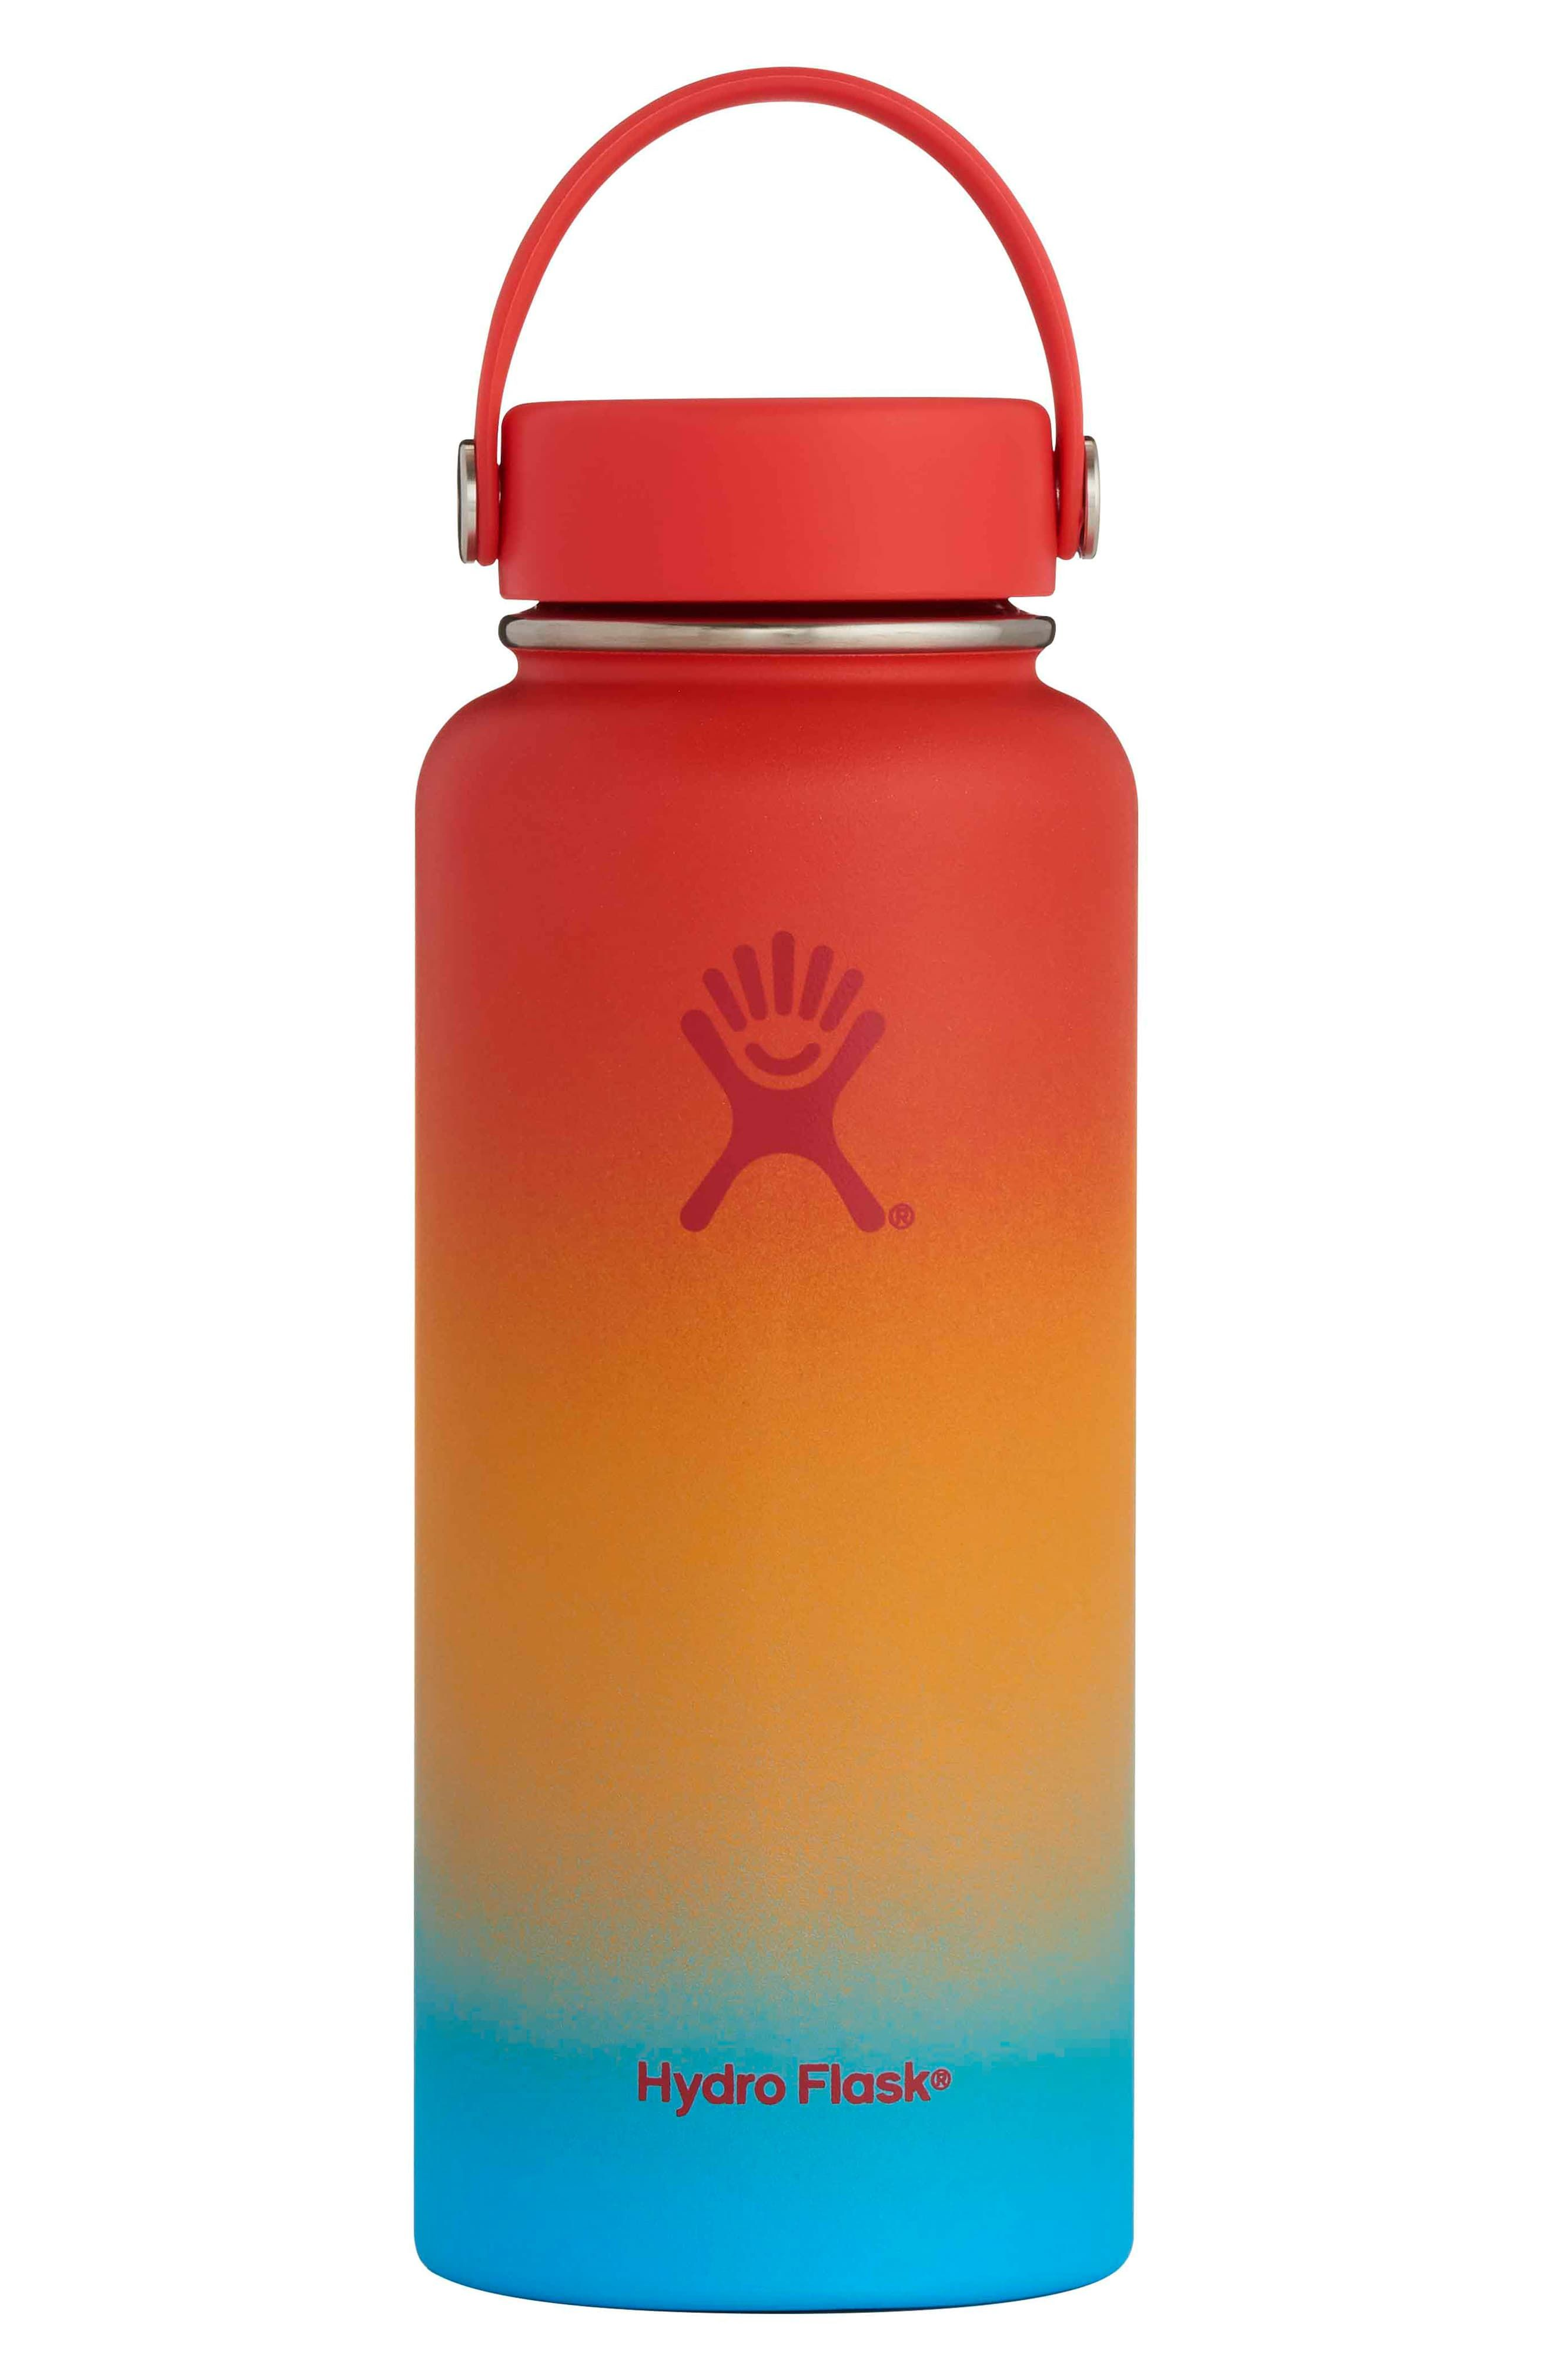 Hydro Flask Shave Ice 32 Ounce Wide Mouth Cap Bottle Size One Size Orange Hydro Flask Bottle Hydroflask Flask